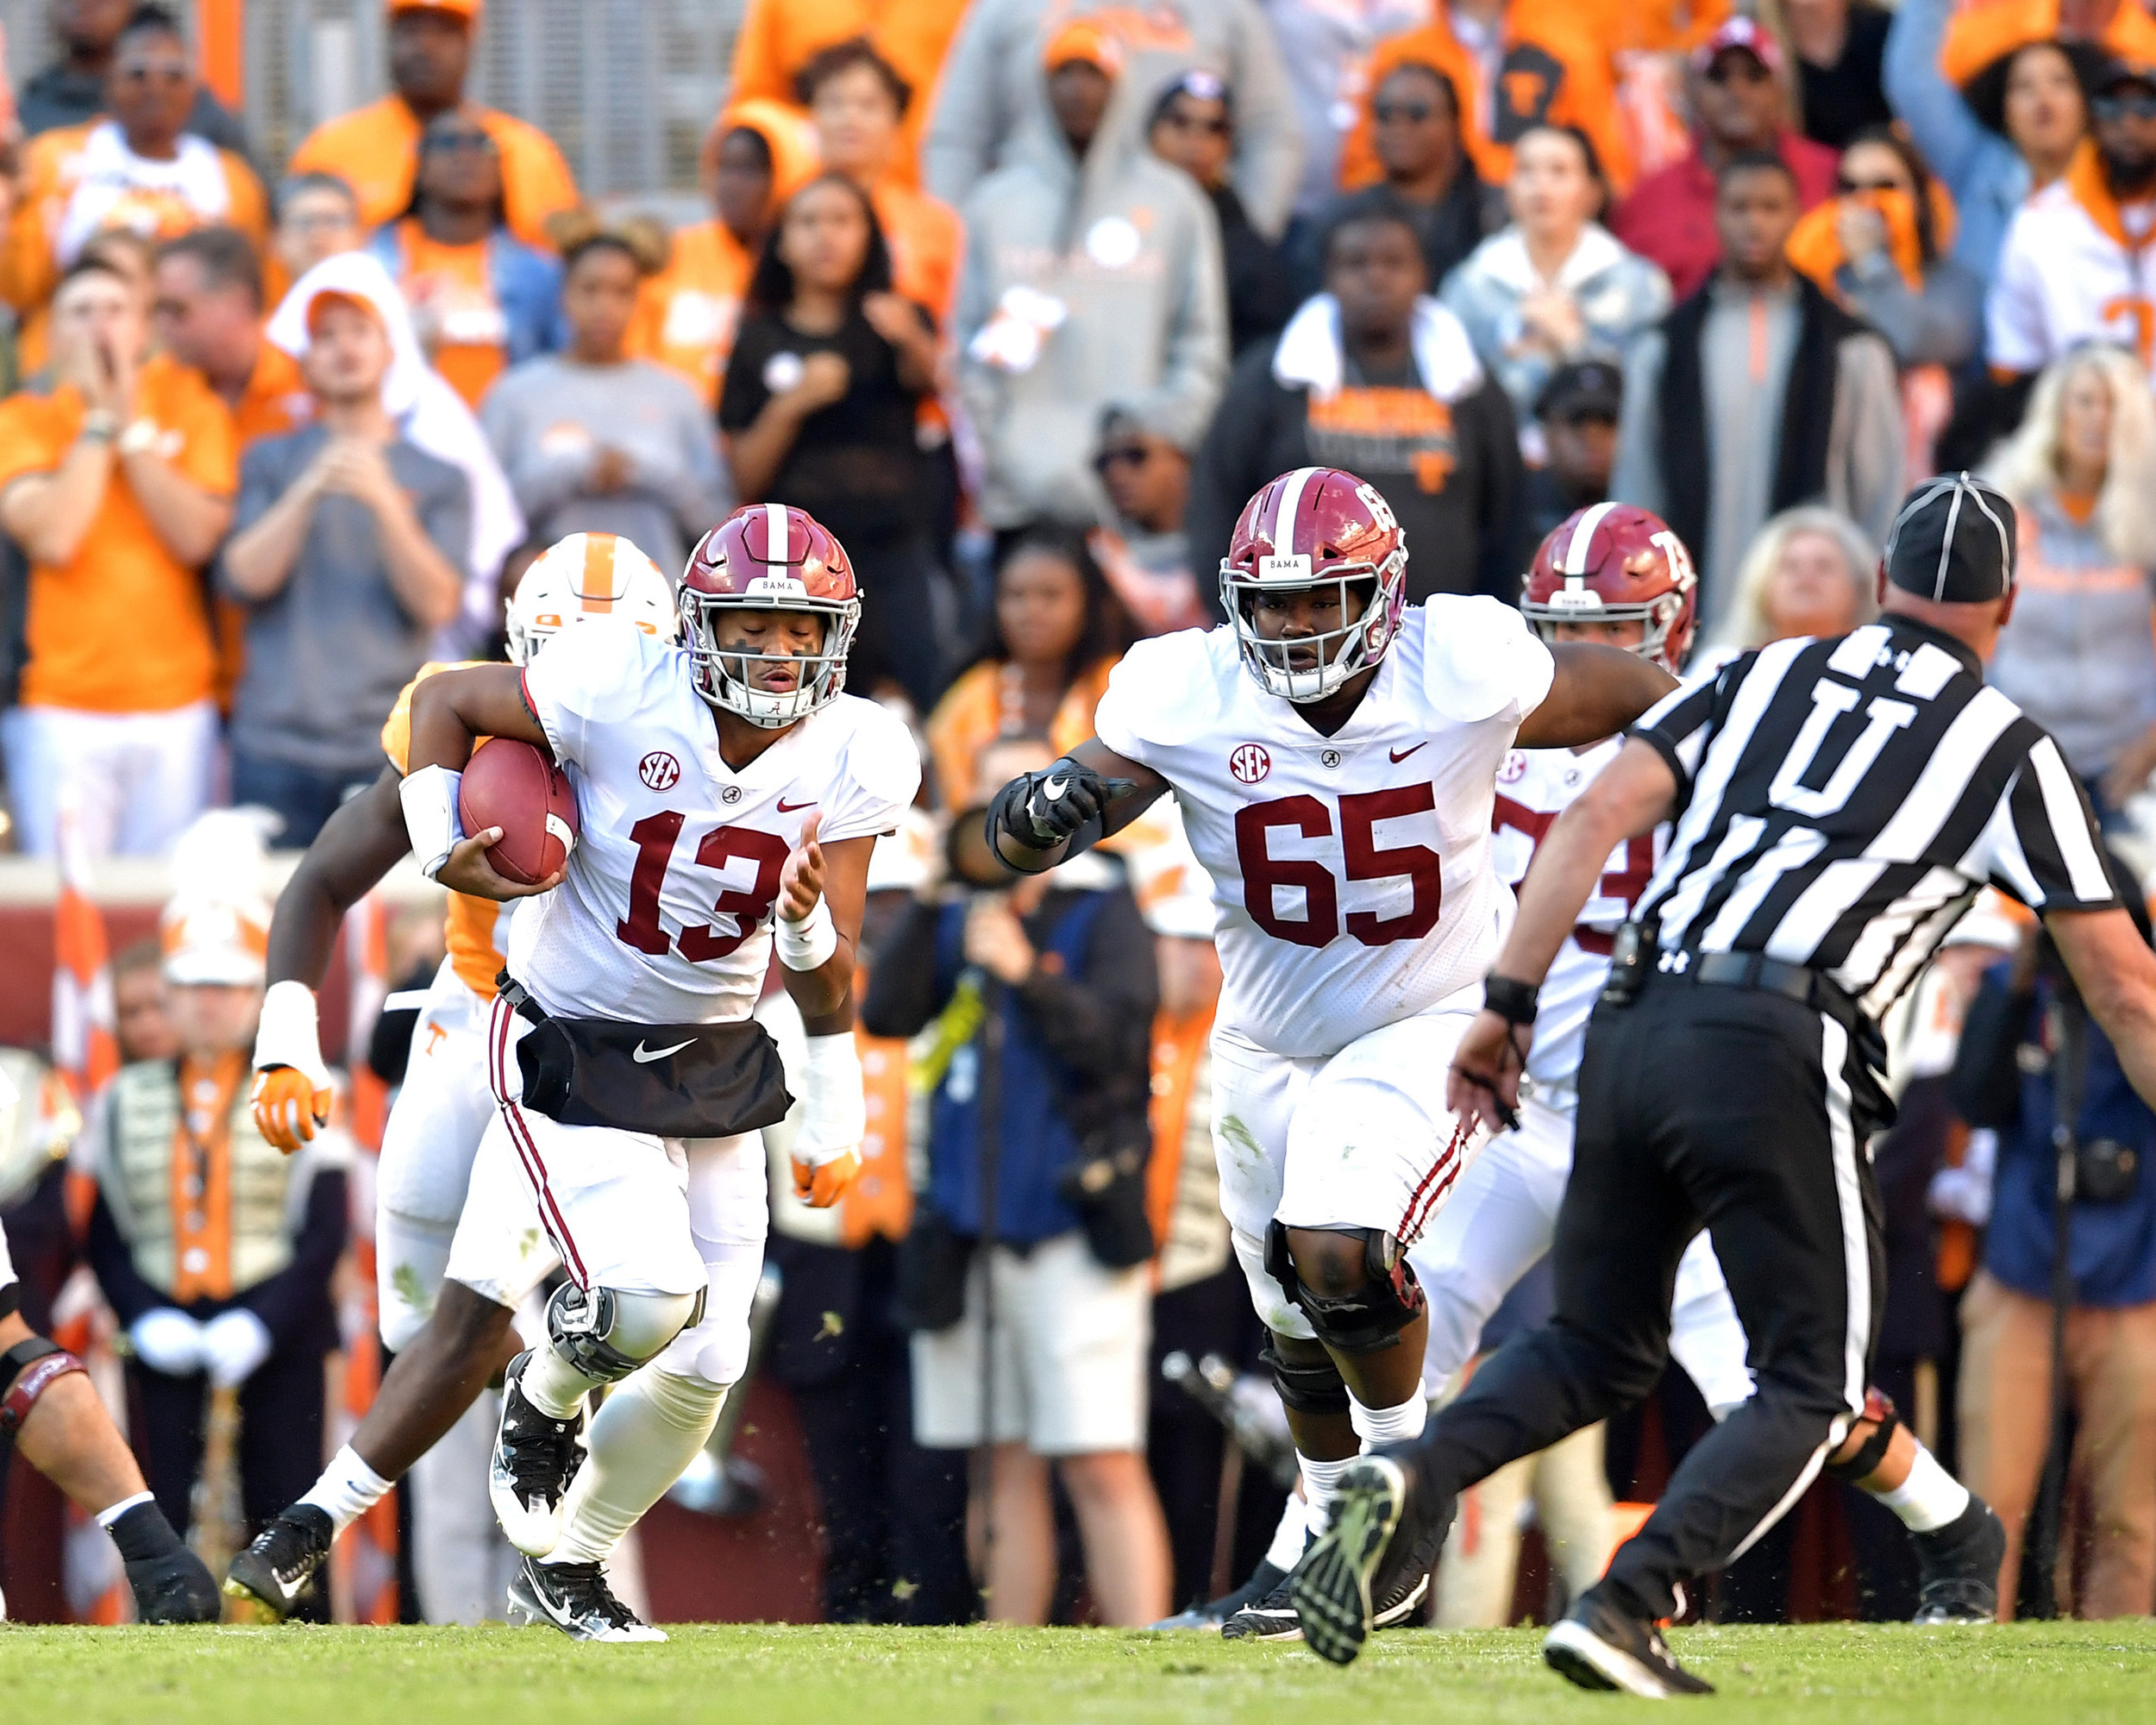 Alabama Crimson Tide quarterback Tua Tagovailoa (13) with a keeper in the second quarter of the Alabama at Tennessee NCAA football game on Saturday, Oct. 20, 2018, at Neyland Stadium in Knoxville. Tenn. Alabama wins 58-21. (Photo by Lee Walls)